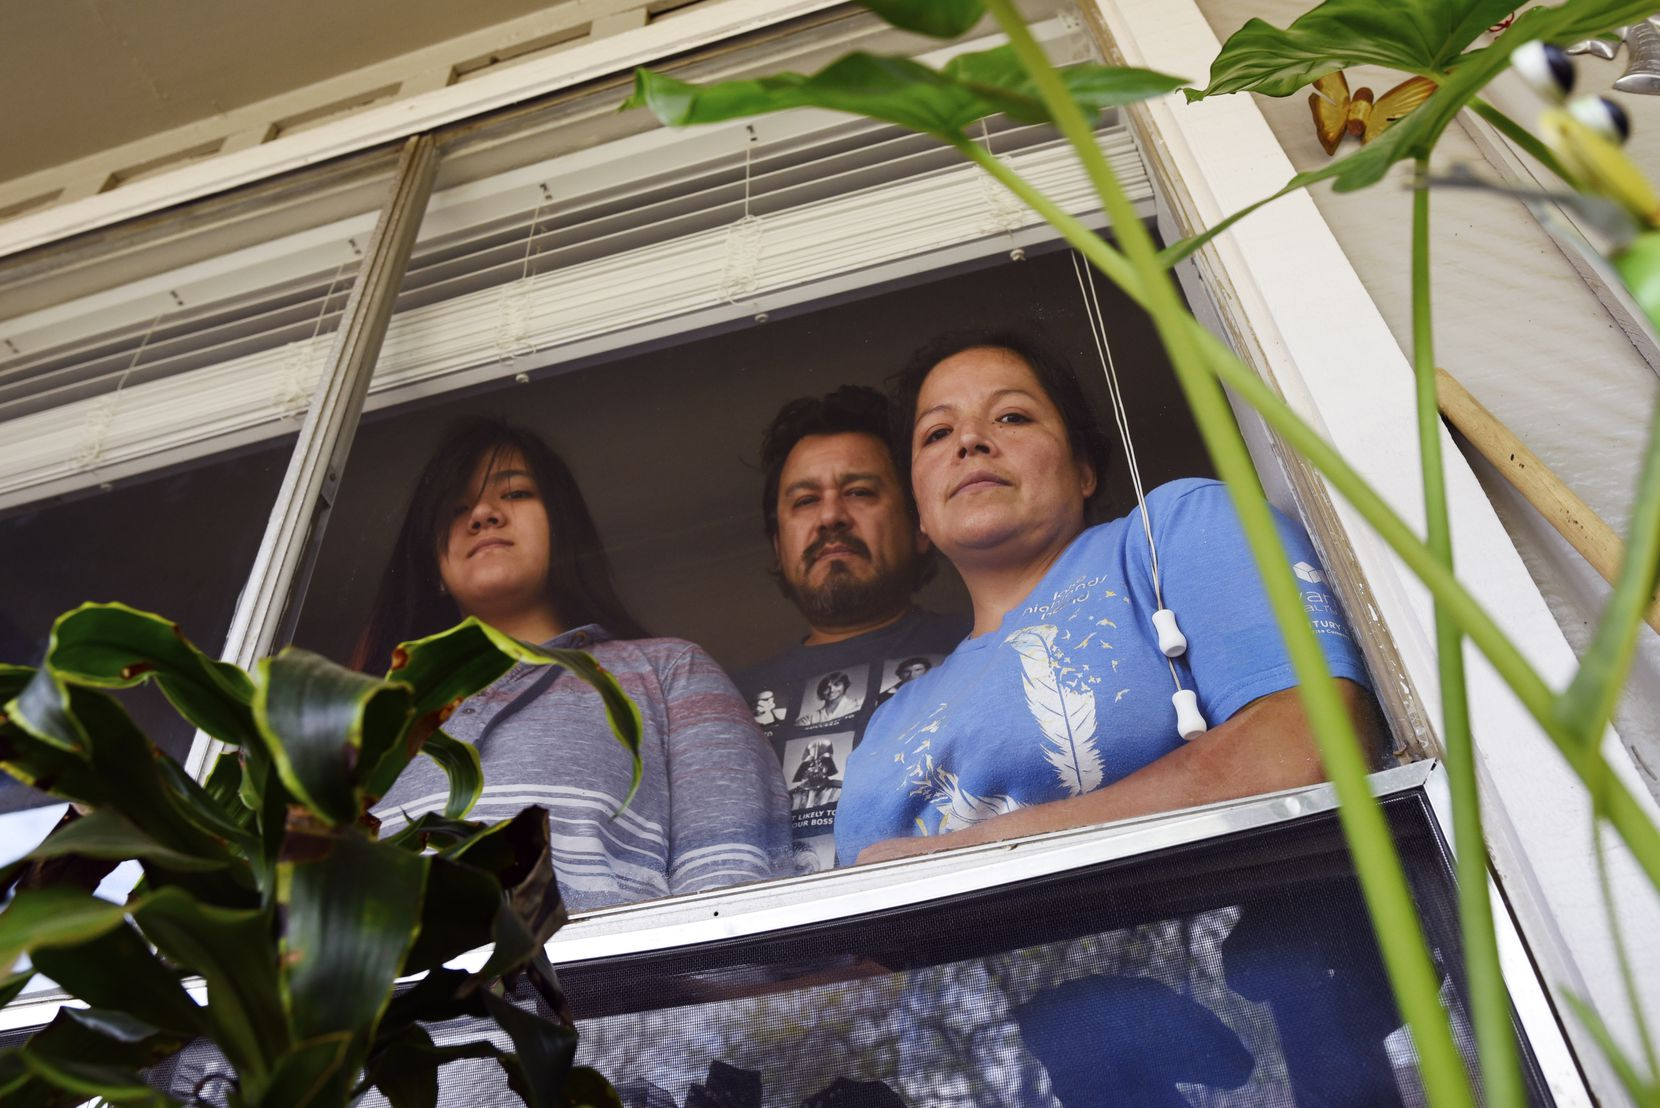 Aurora Salazar (right) is shown with husband Alberto Hernandez and one of their kids, Karina Herandez, inside their apartment in Dallas.